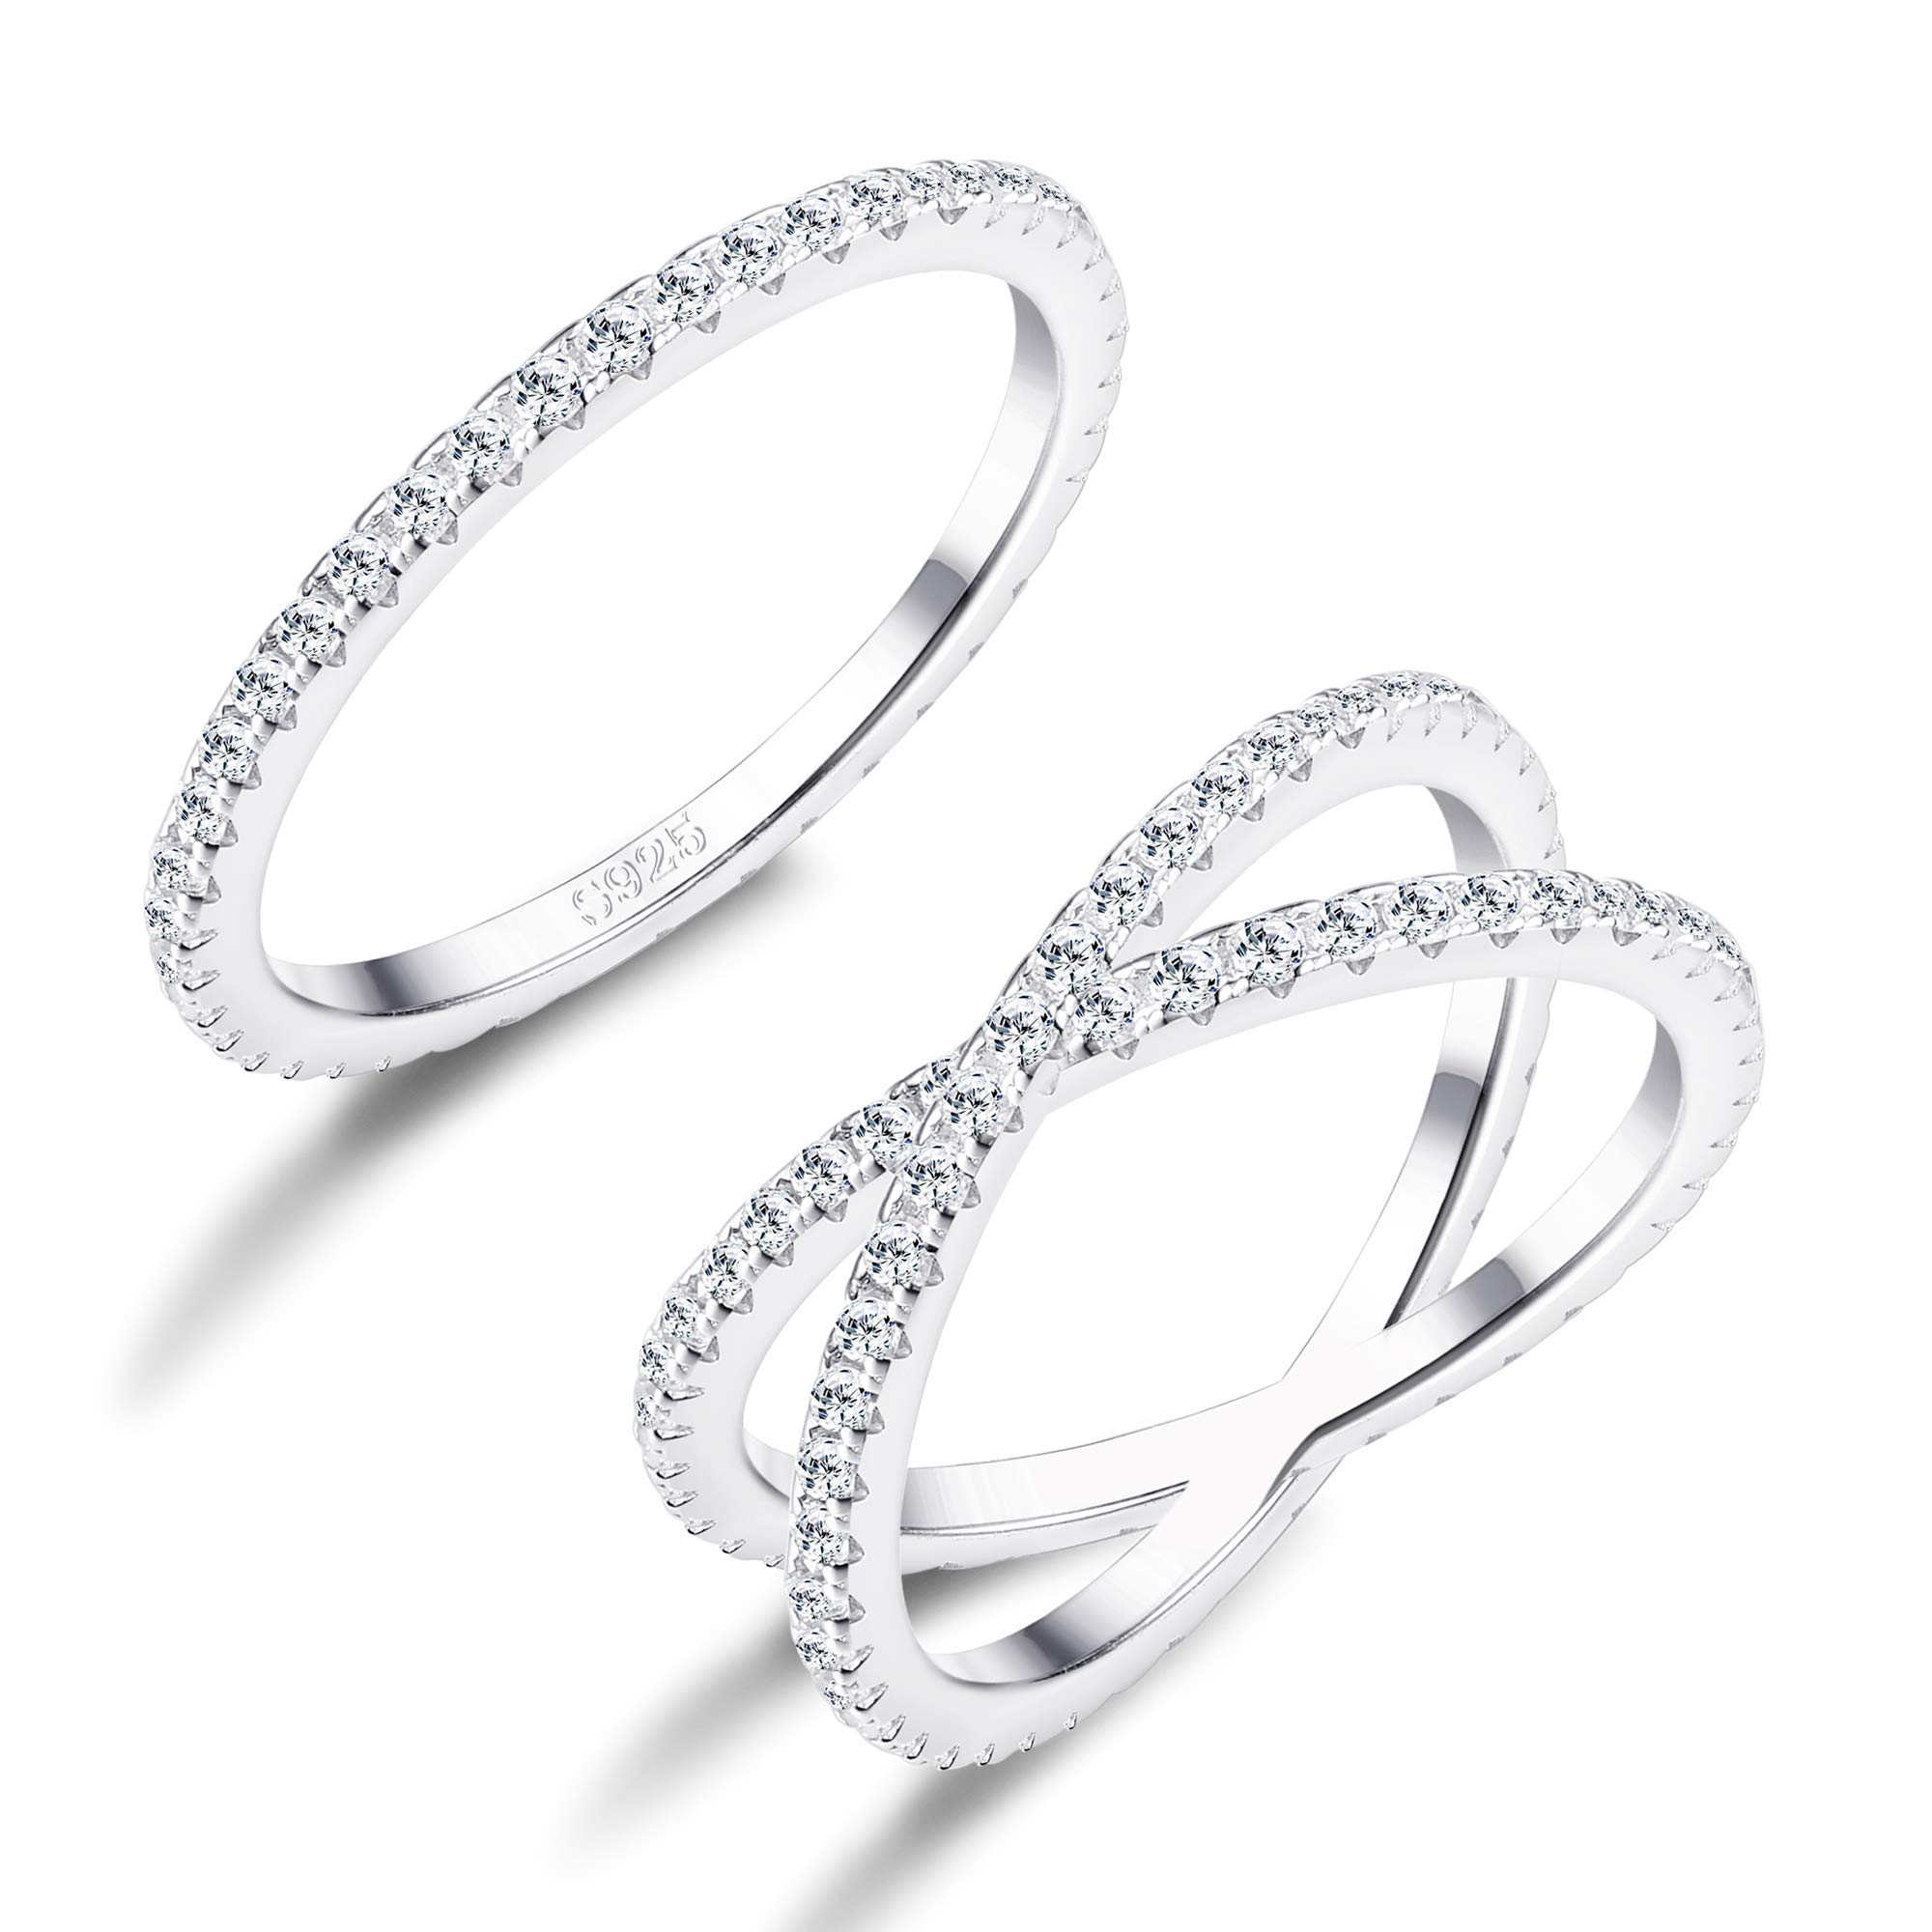 FUNRUN JEWELRY 2 PCS Sterling Silver Cubic Zirconia Rings Set for Women X Ring CZ Wedding Band Rings Stackable Size 8